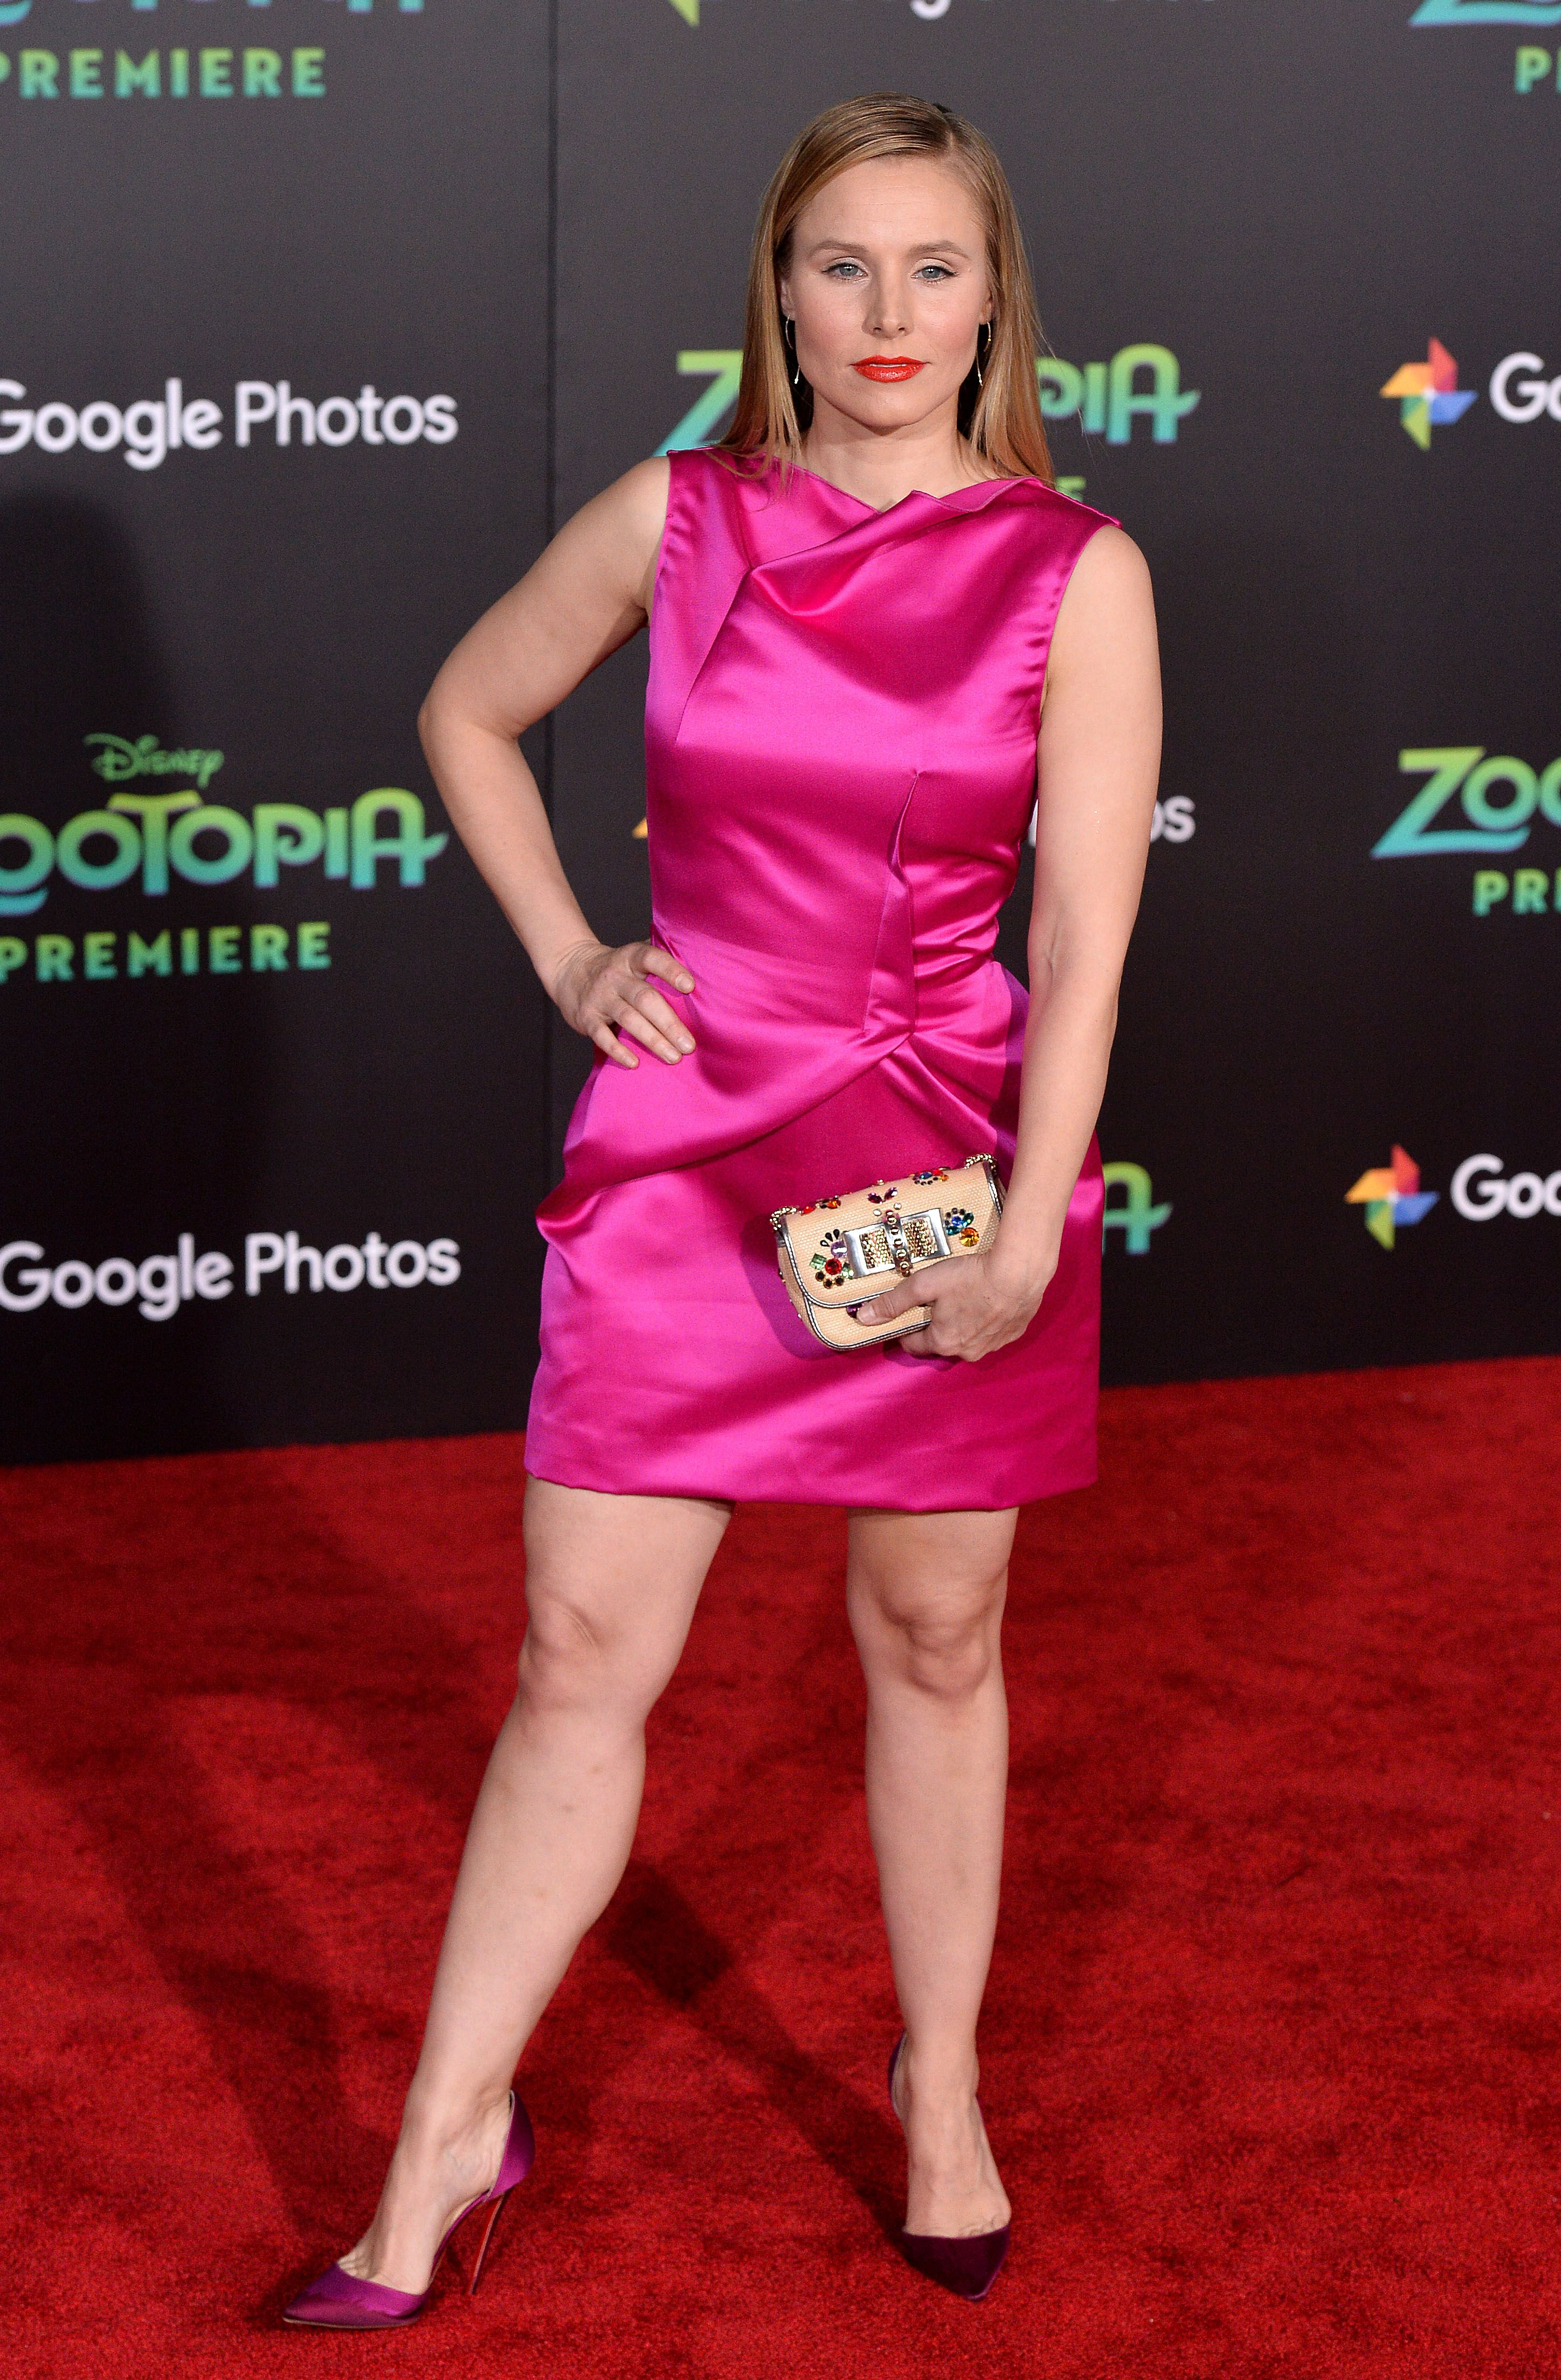 Kristen Bell Kristen Bell Pinterest Kristen Bell And